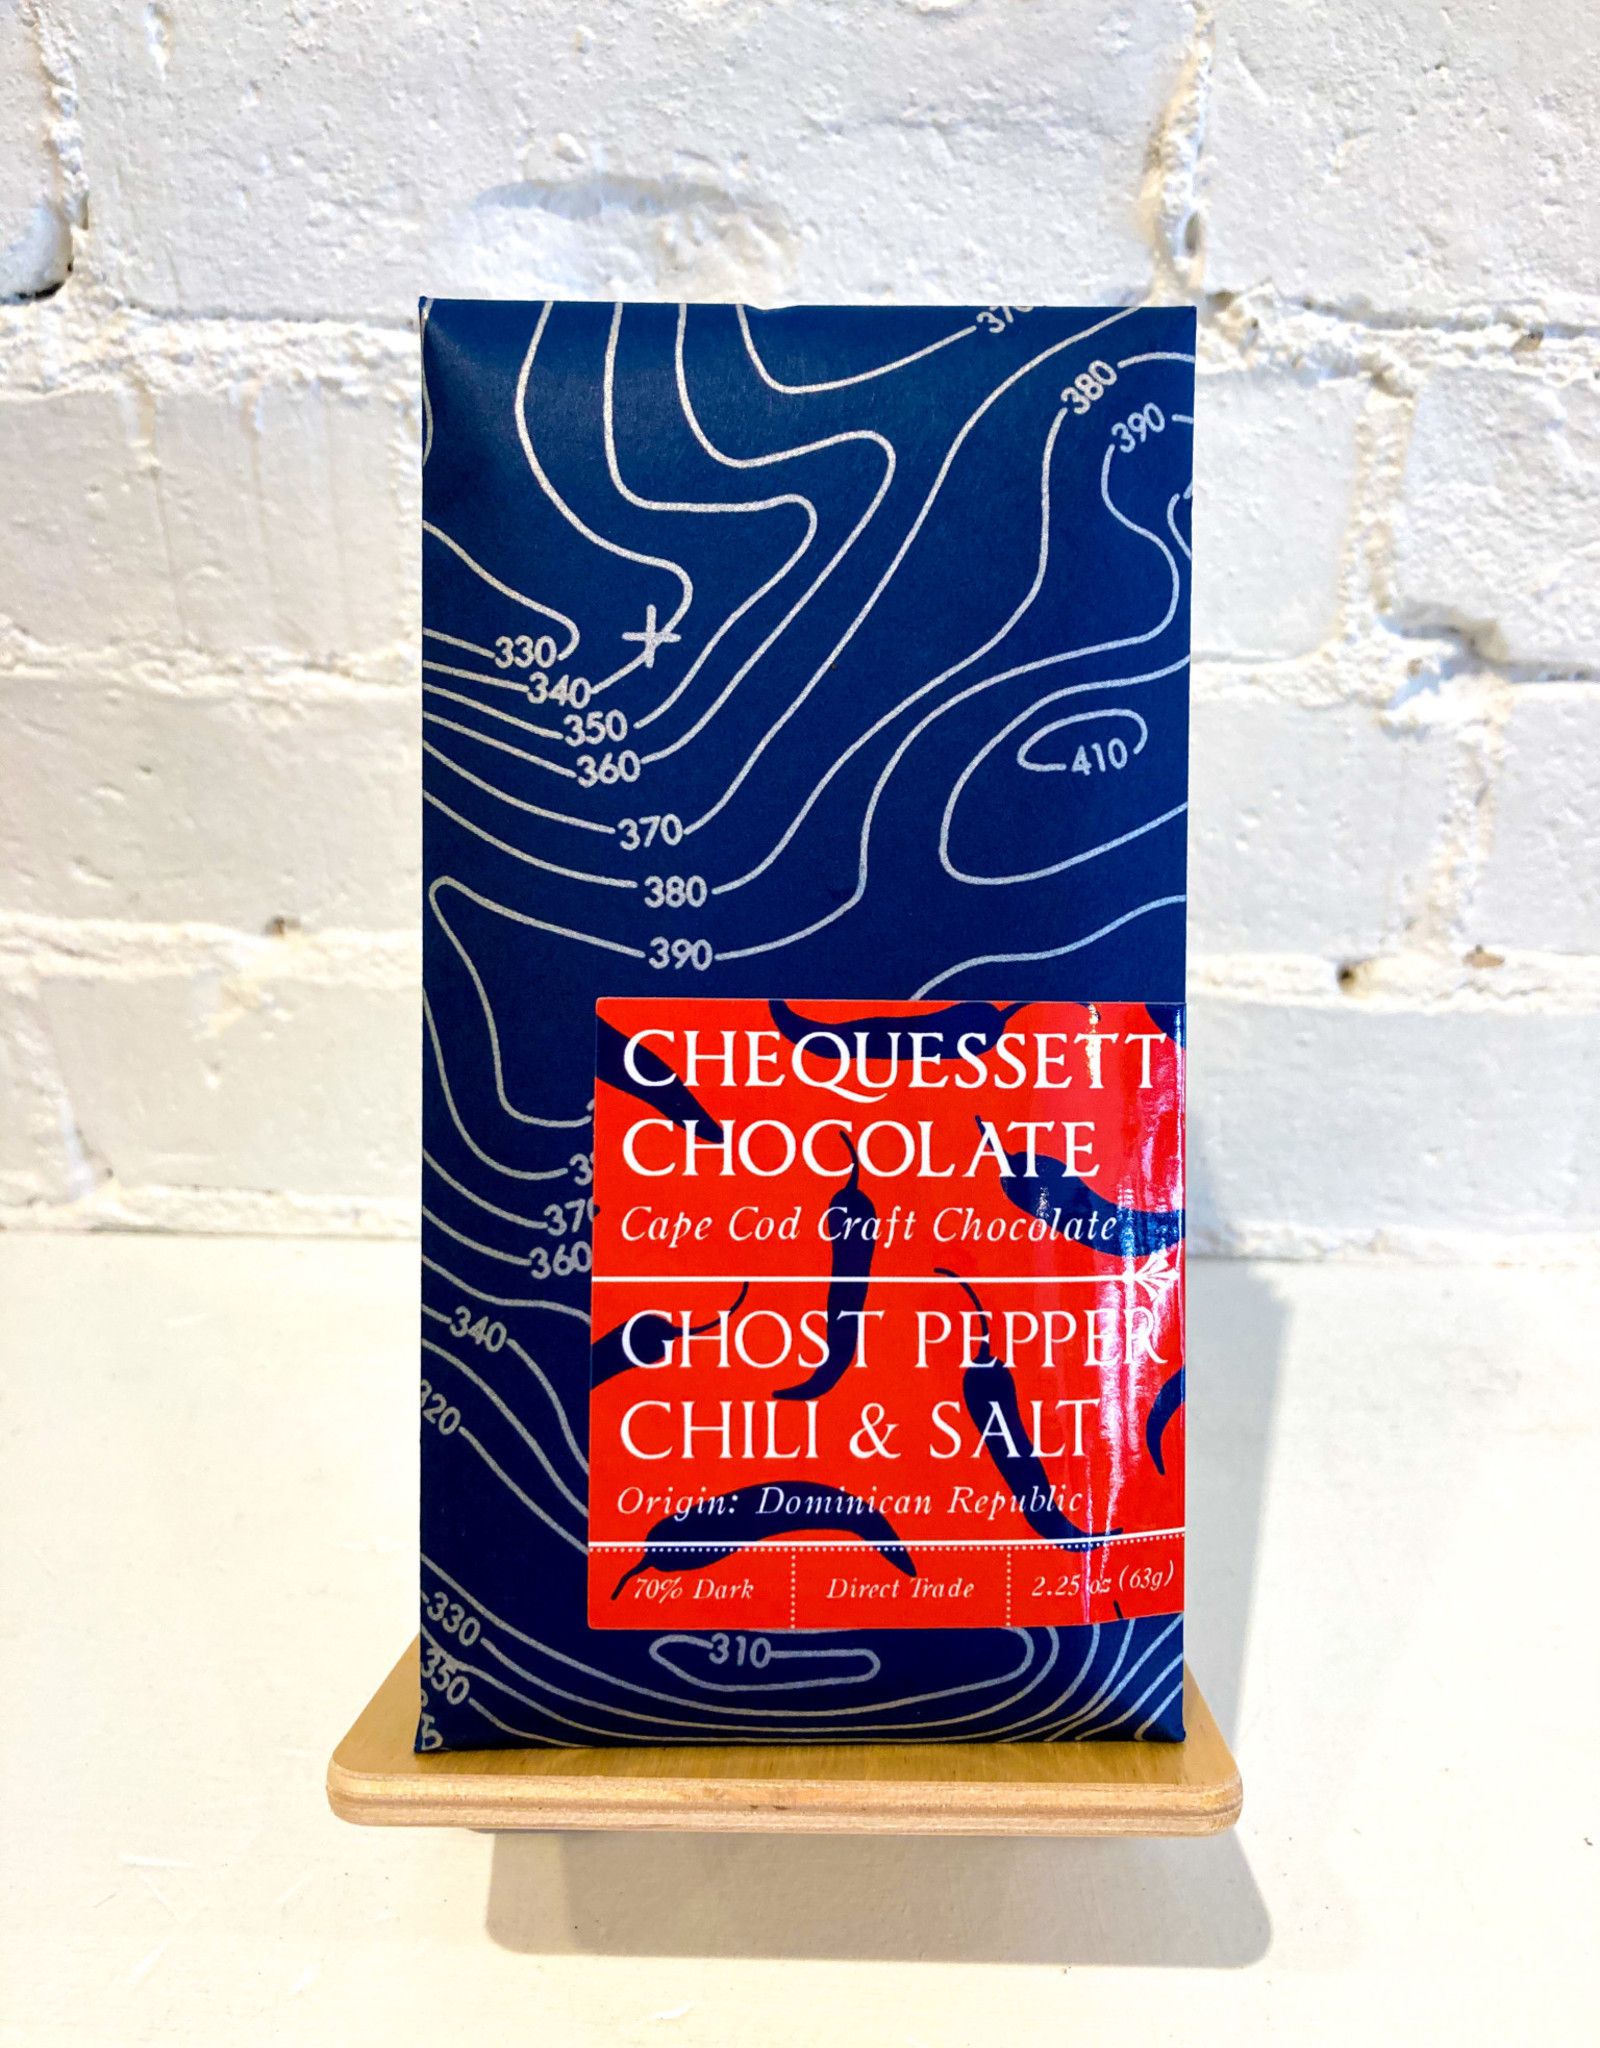 Chequessett Chocolate Ghost Pepper Chili & Salt Bar